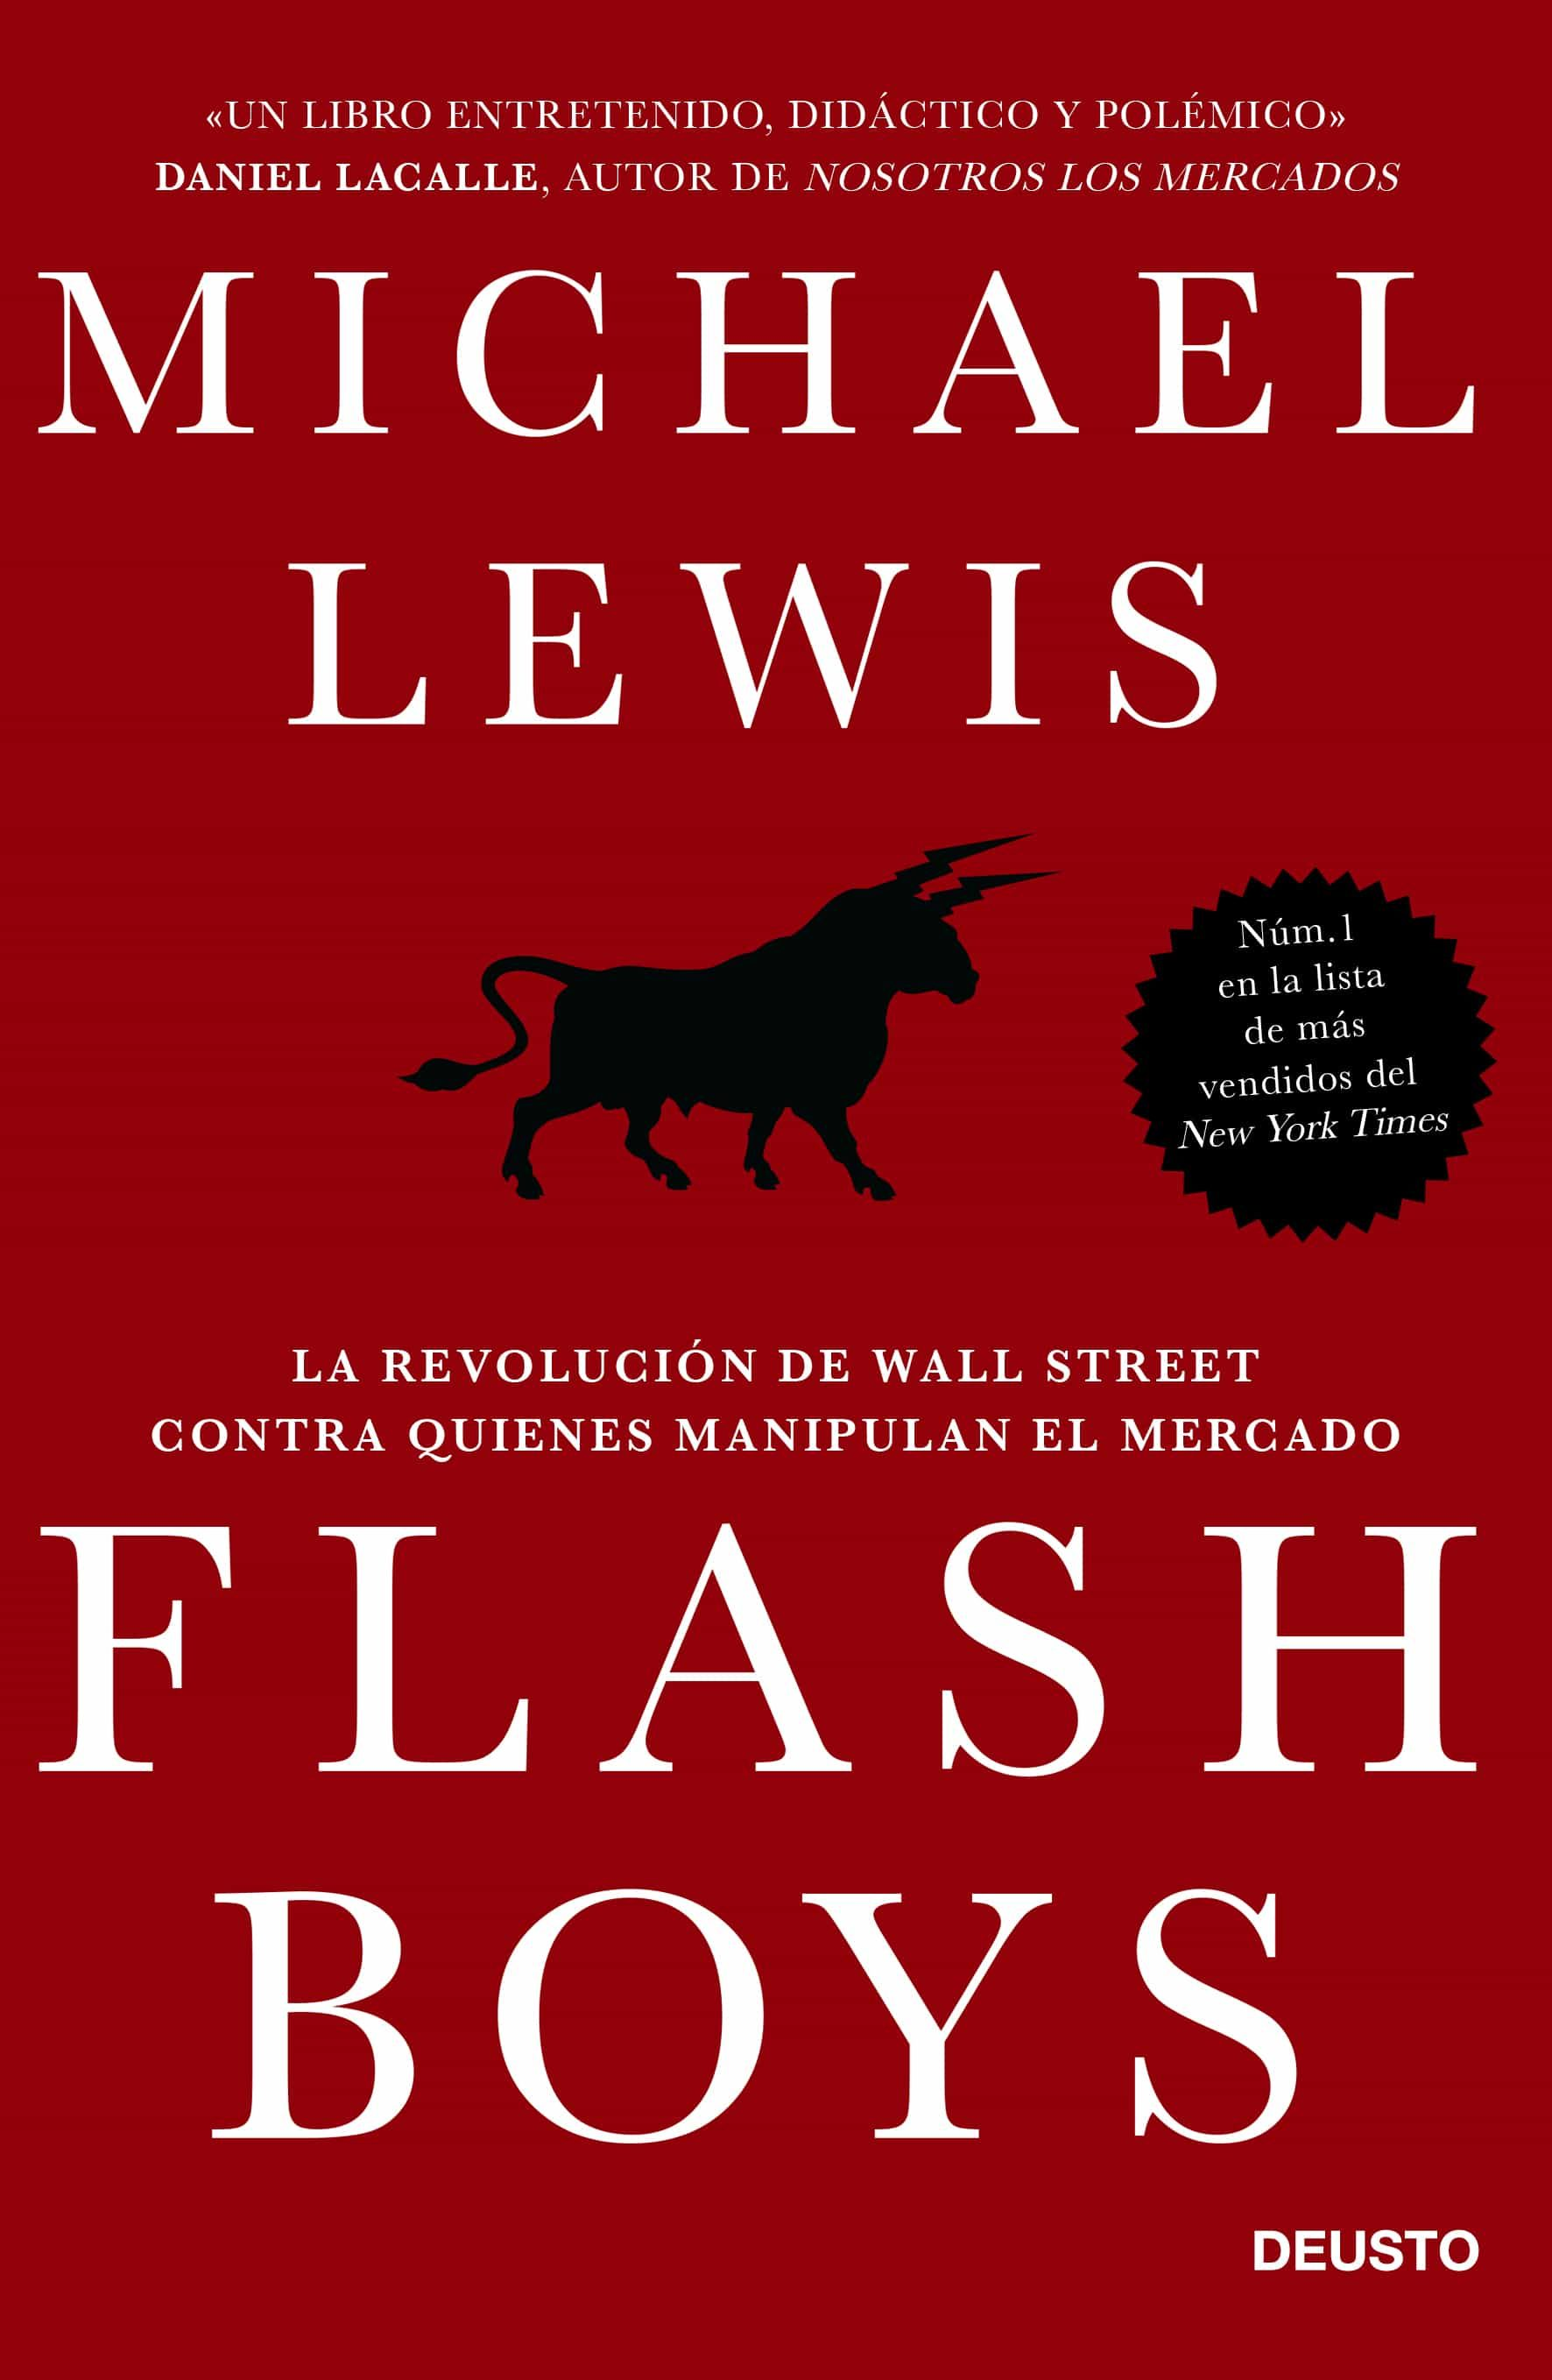 flash boys-michael lewis-9788423418800